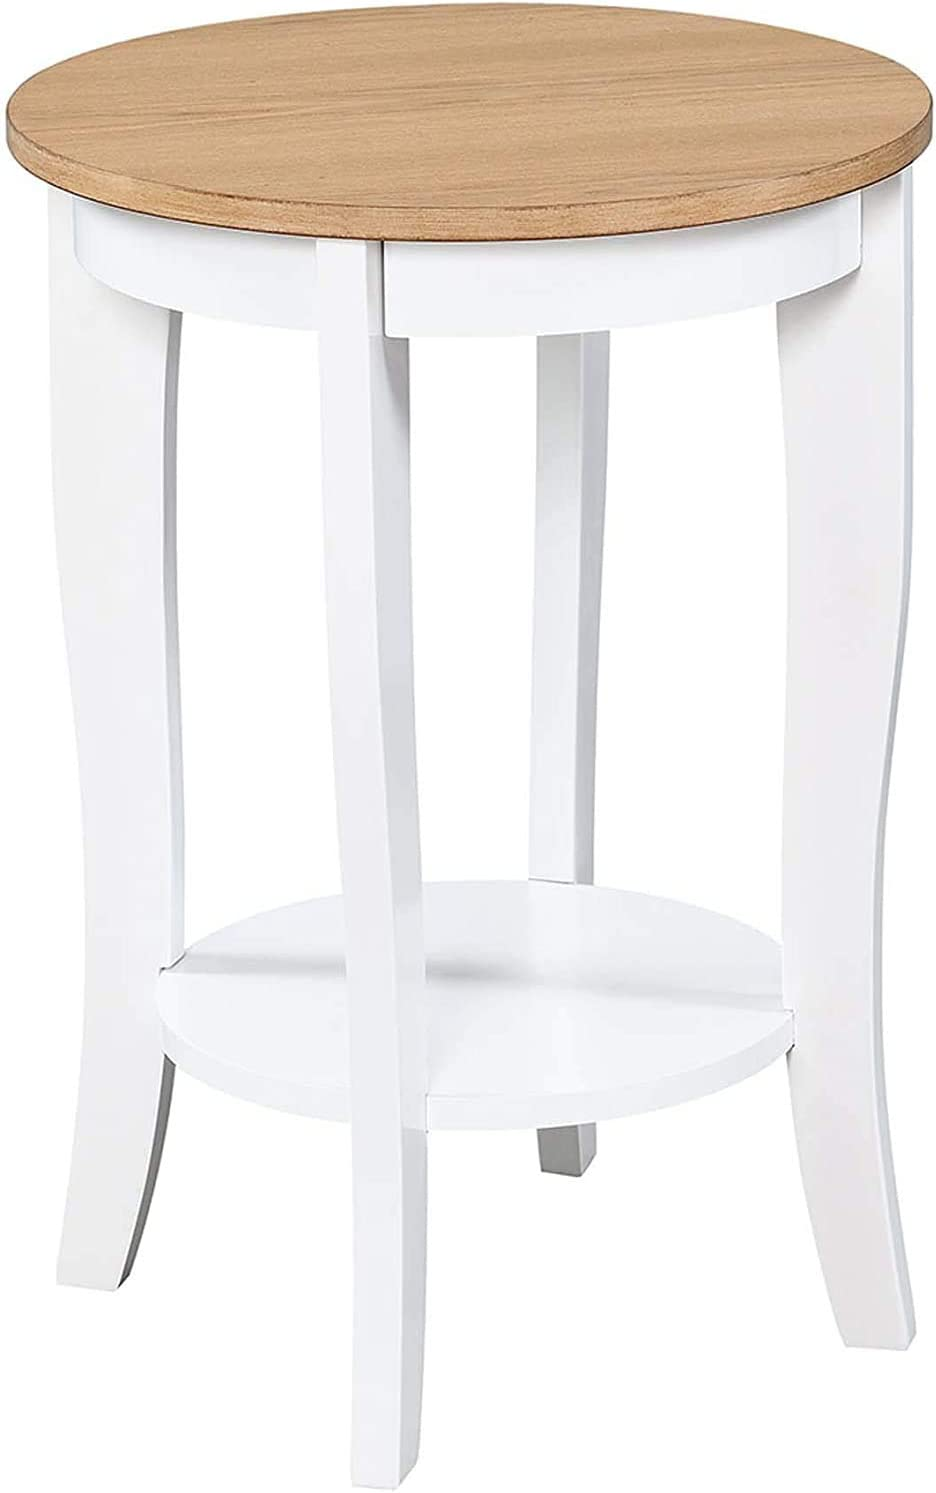 Convenience Concepts American Heritage Round End Table, Driftwood / White